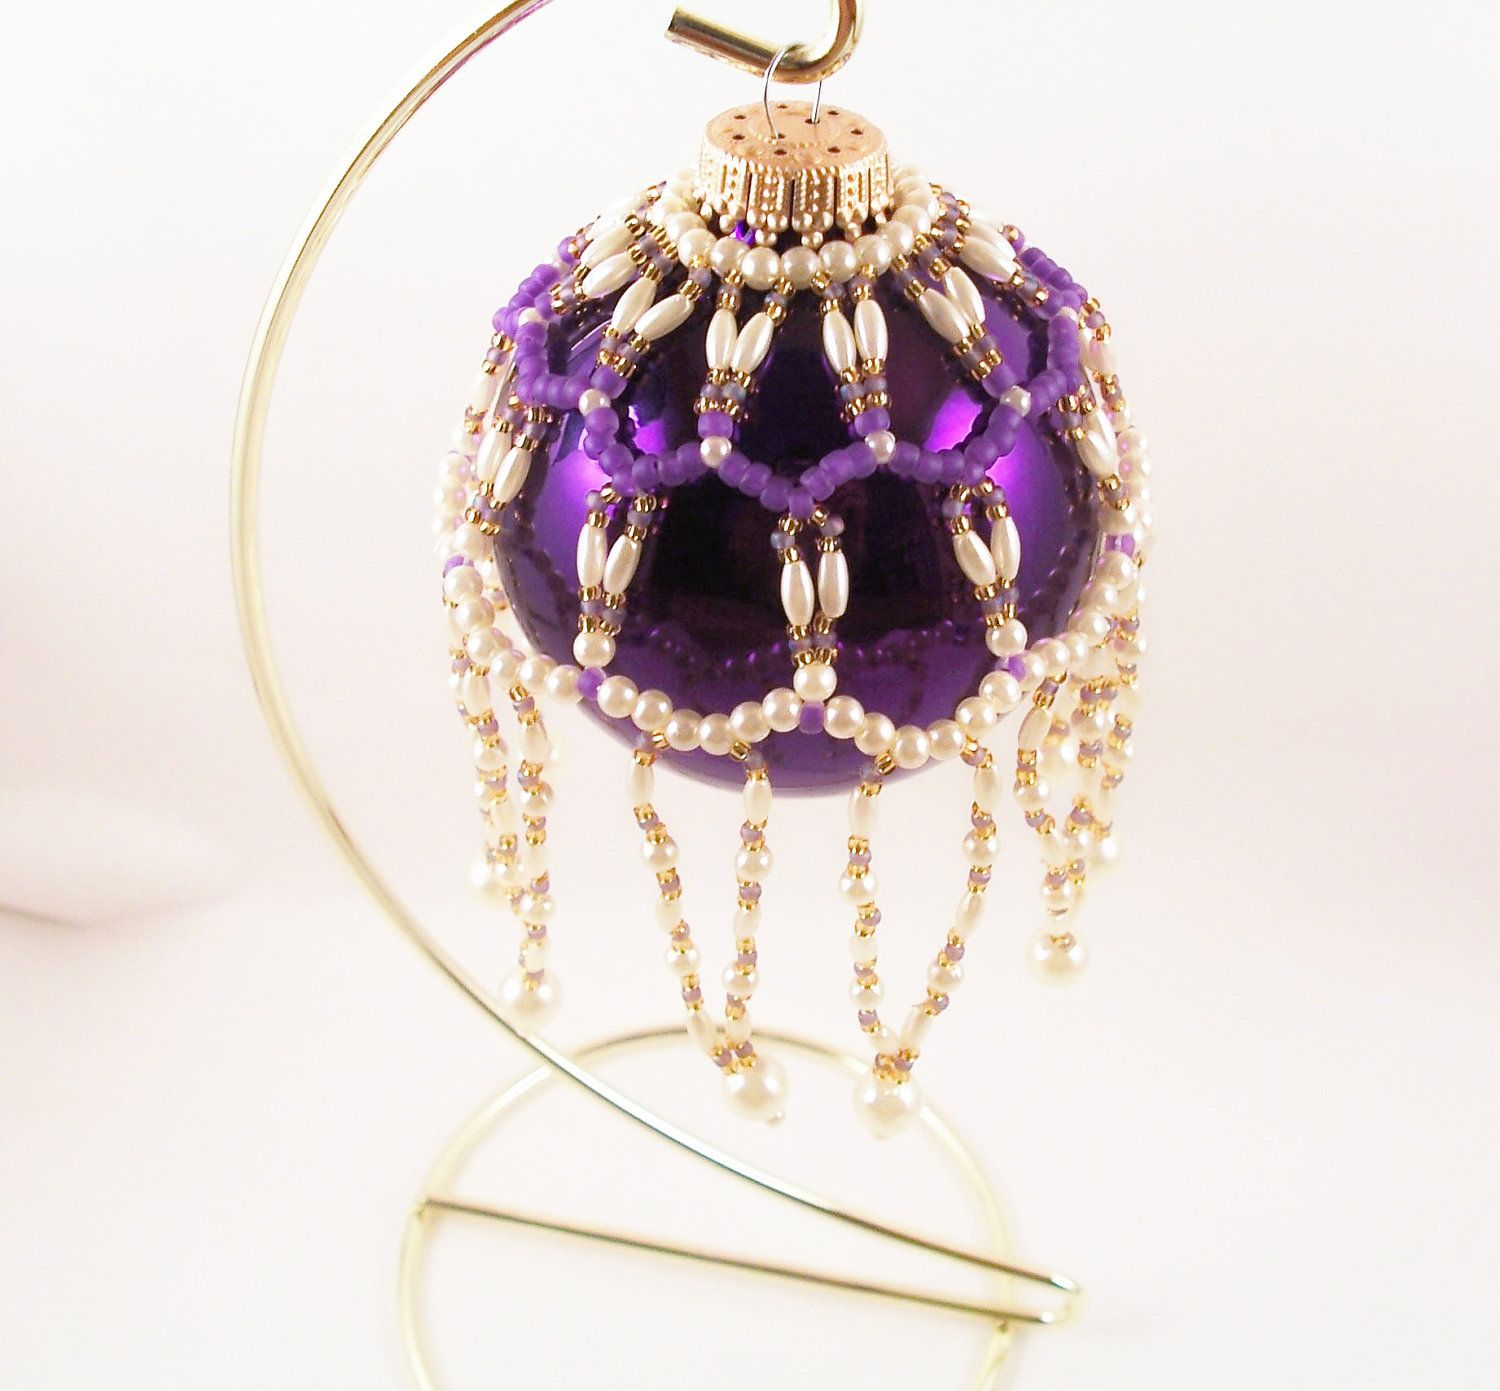 Pearl Ornament Cover Pattern, Beading Tutorial in PDF ...